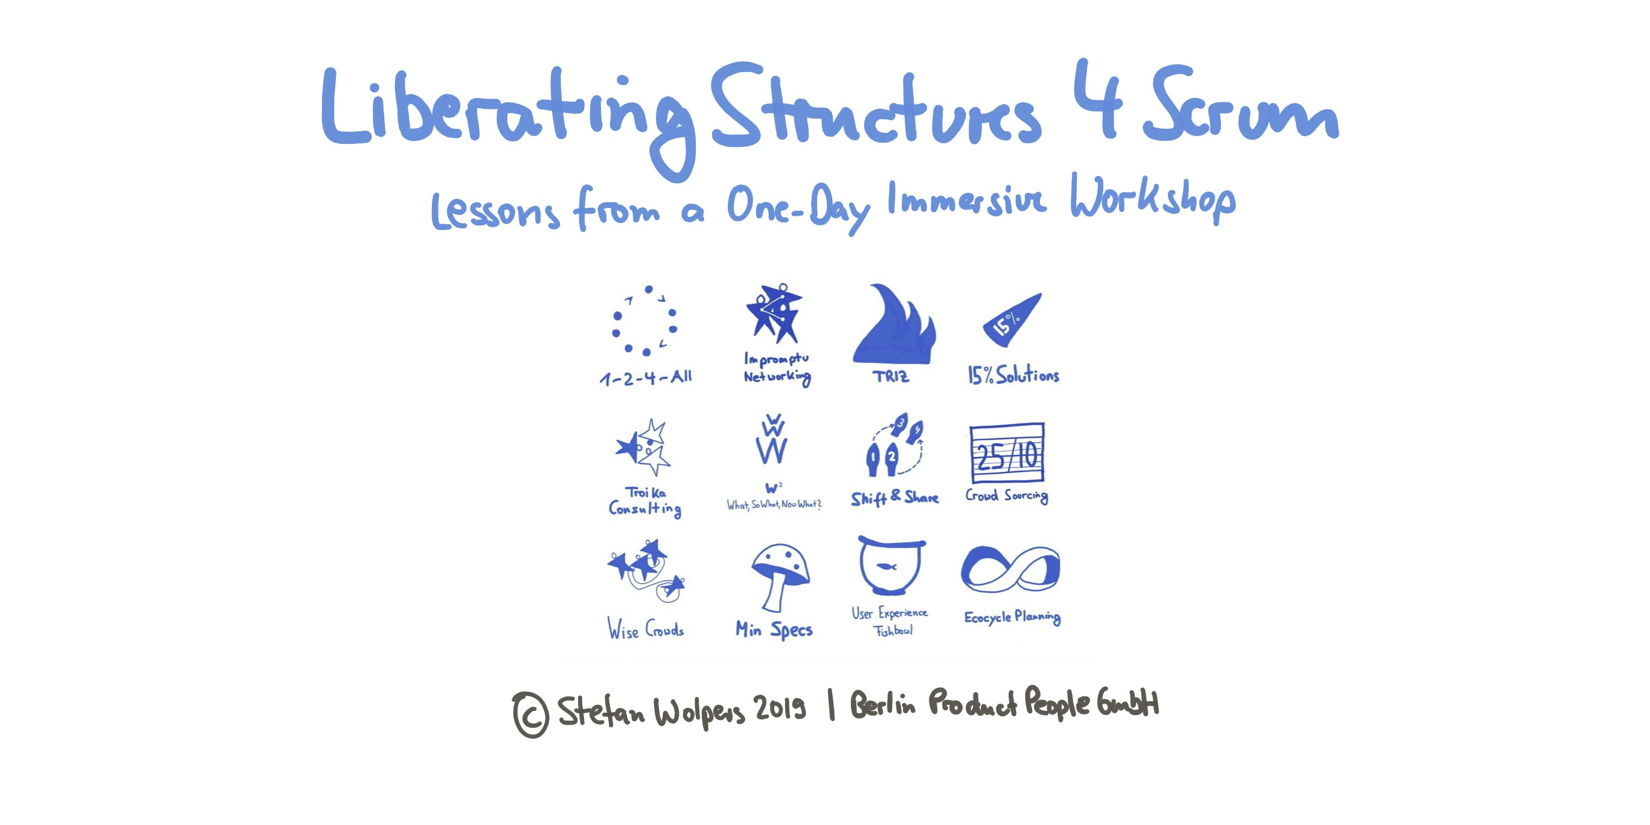 Liberating Structures 4 Scrum: Lessons from a One-Day Immersive Workshop — Berlin Product People GmbH